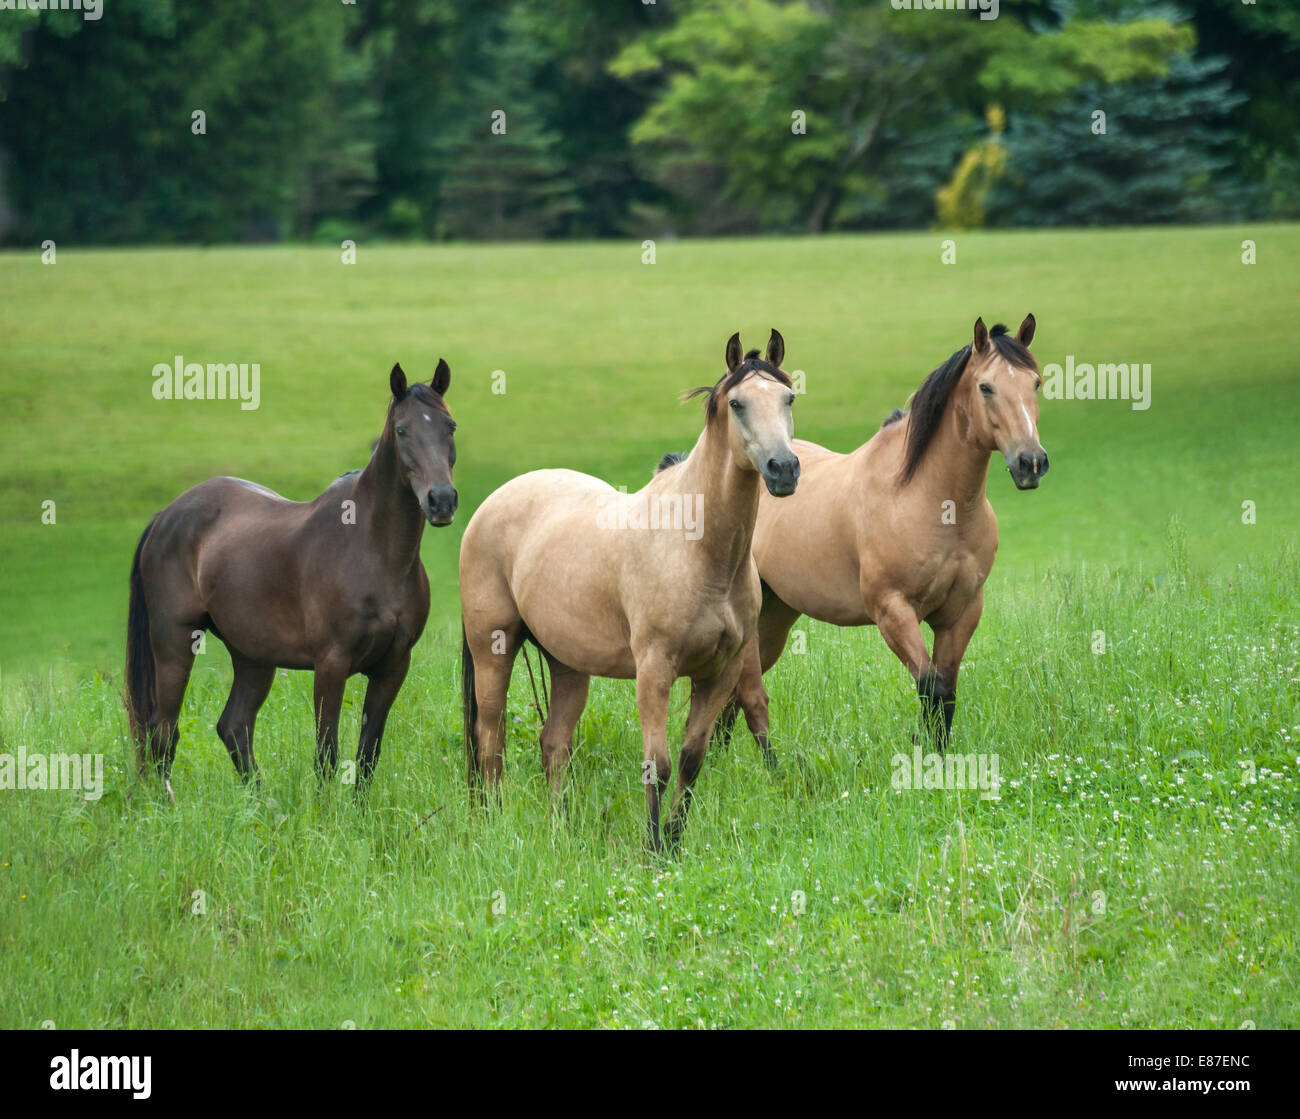 Herd of various horse breeds in lush green paddock - Stock Image